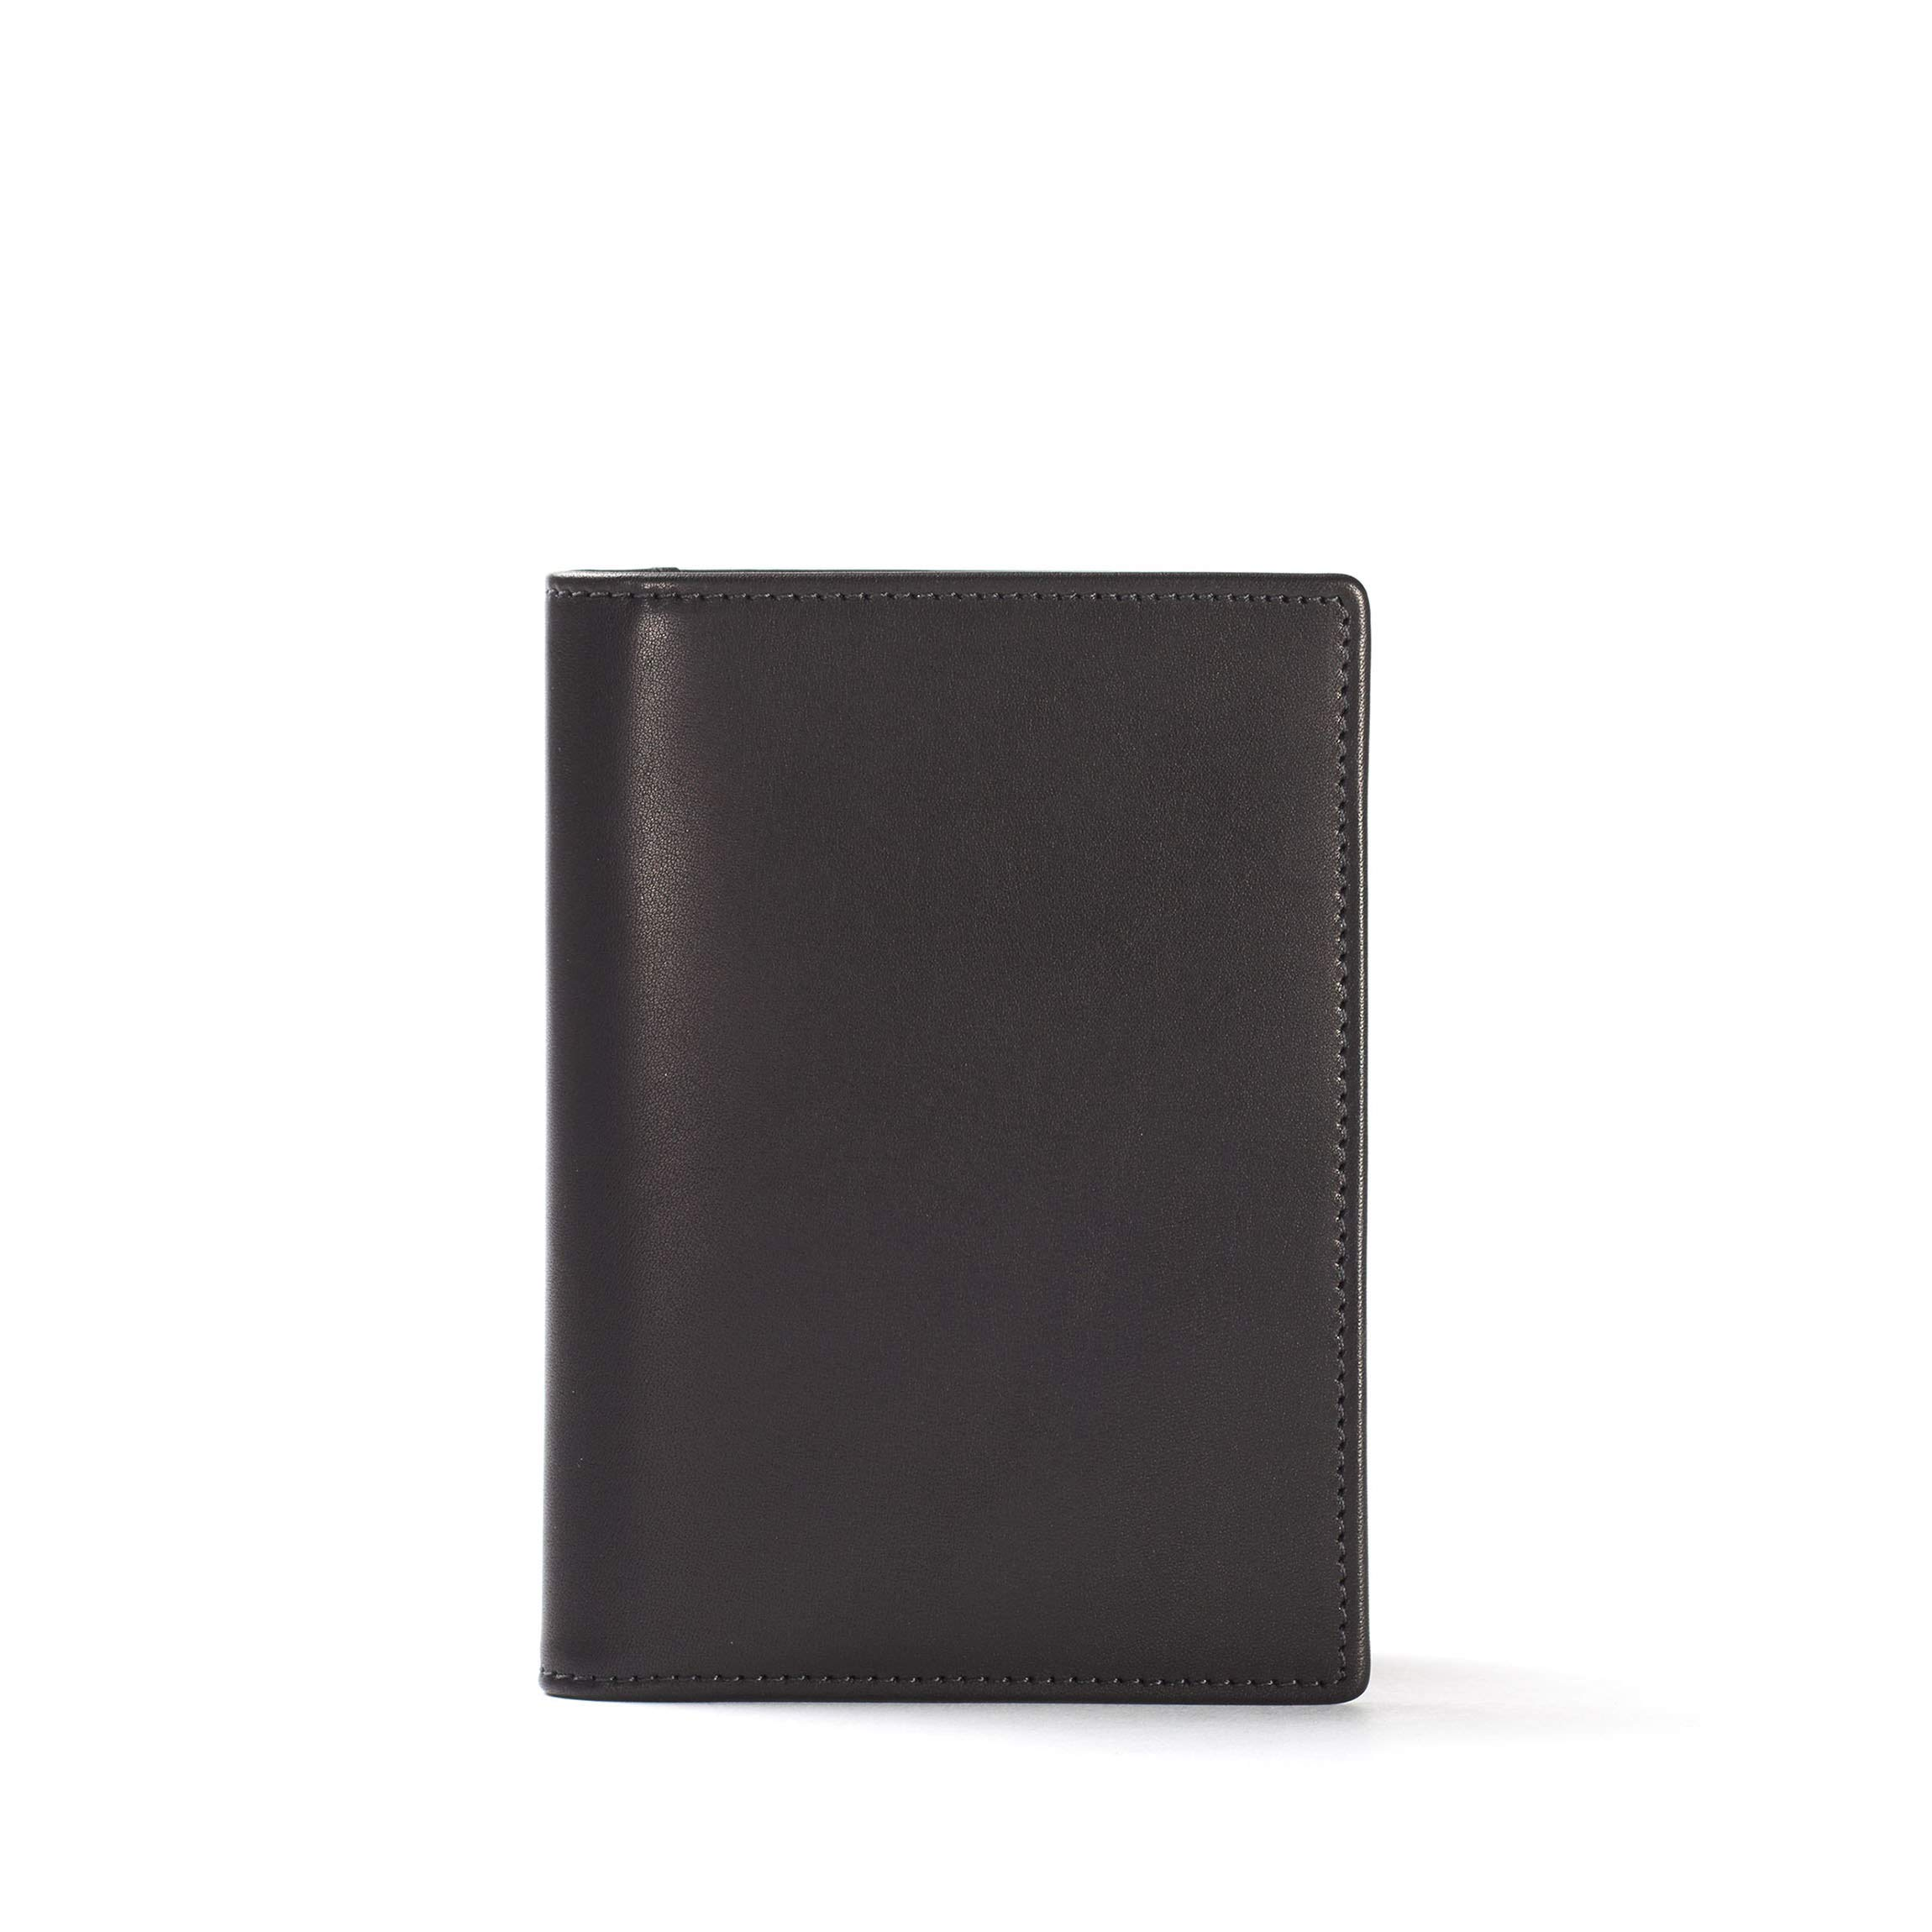 Deluxe Passport Cover - Full Grain German Leather Leather - Black Oil (black)